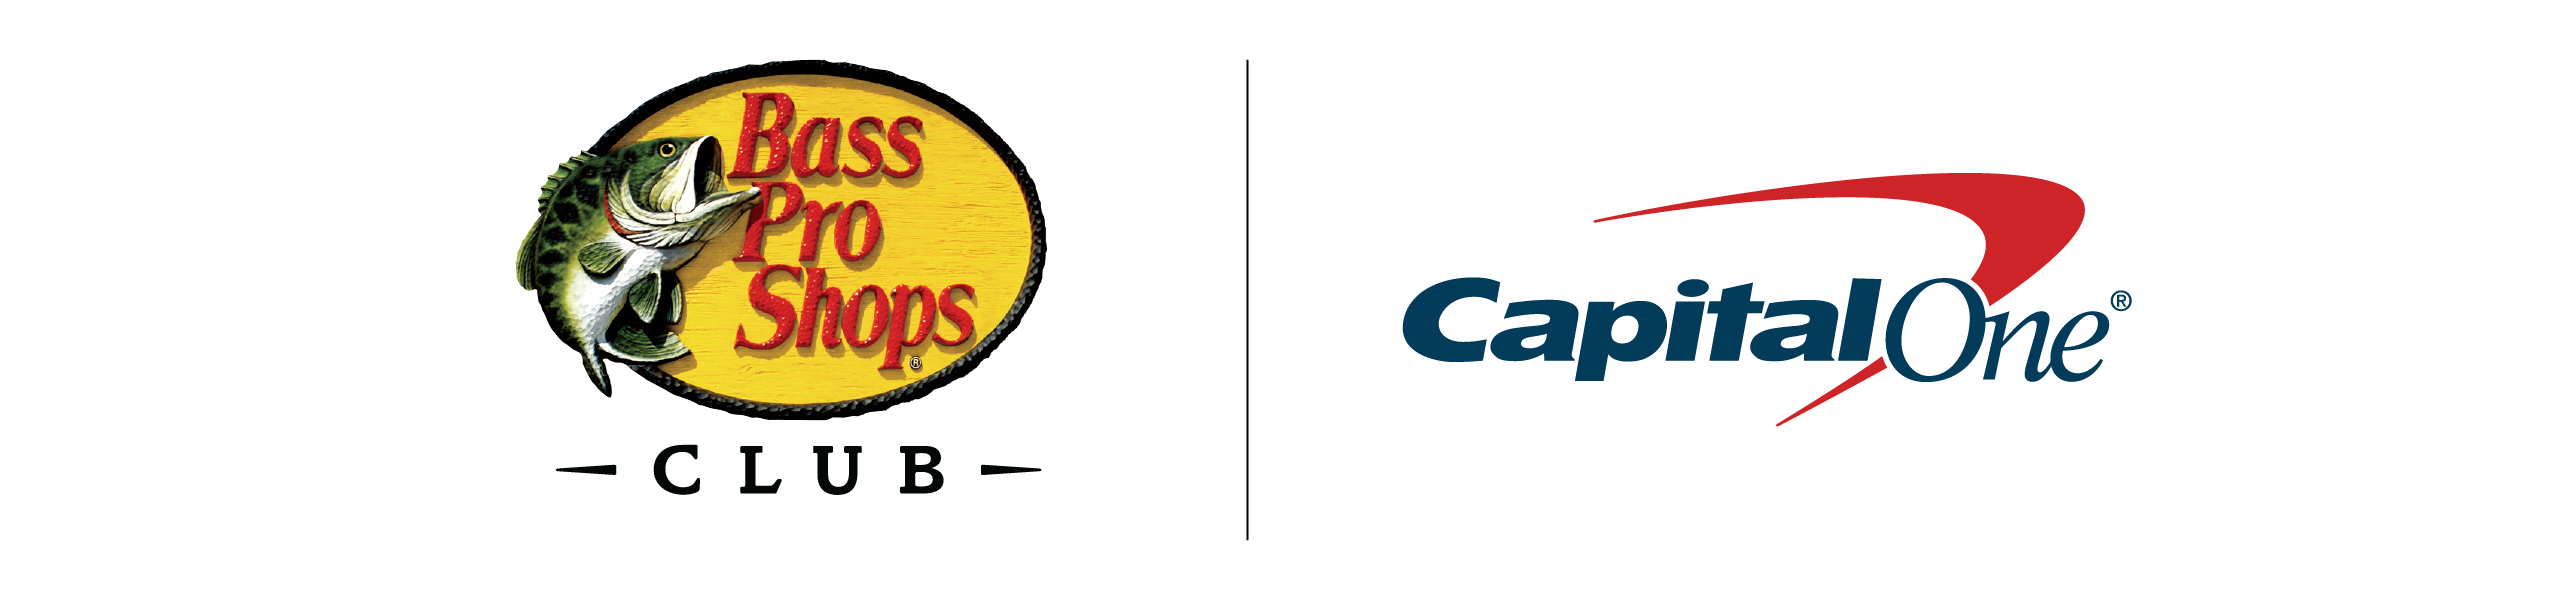 Bass Pro Shops and Cabela's CLUB cards